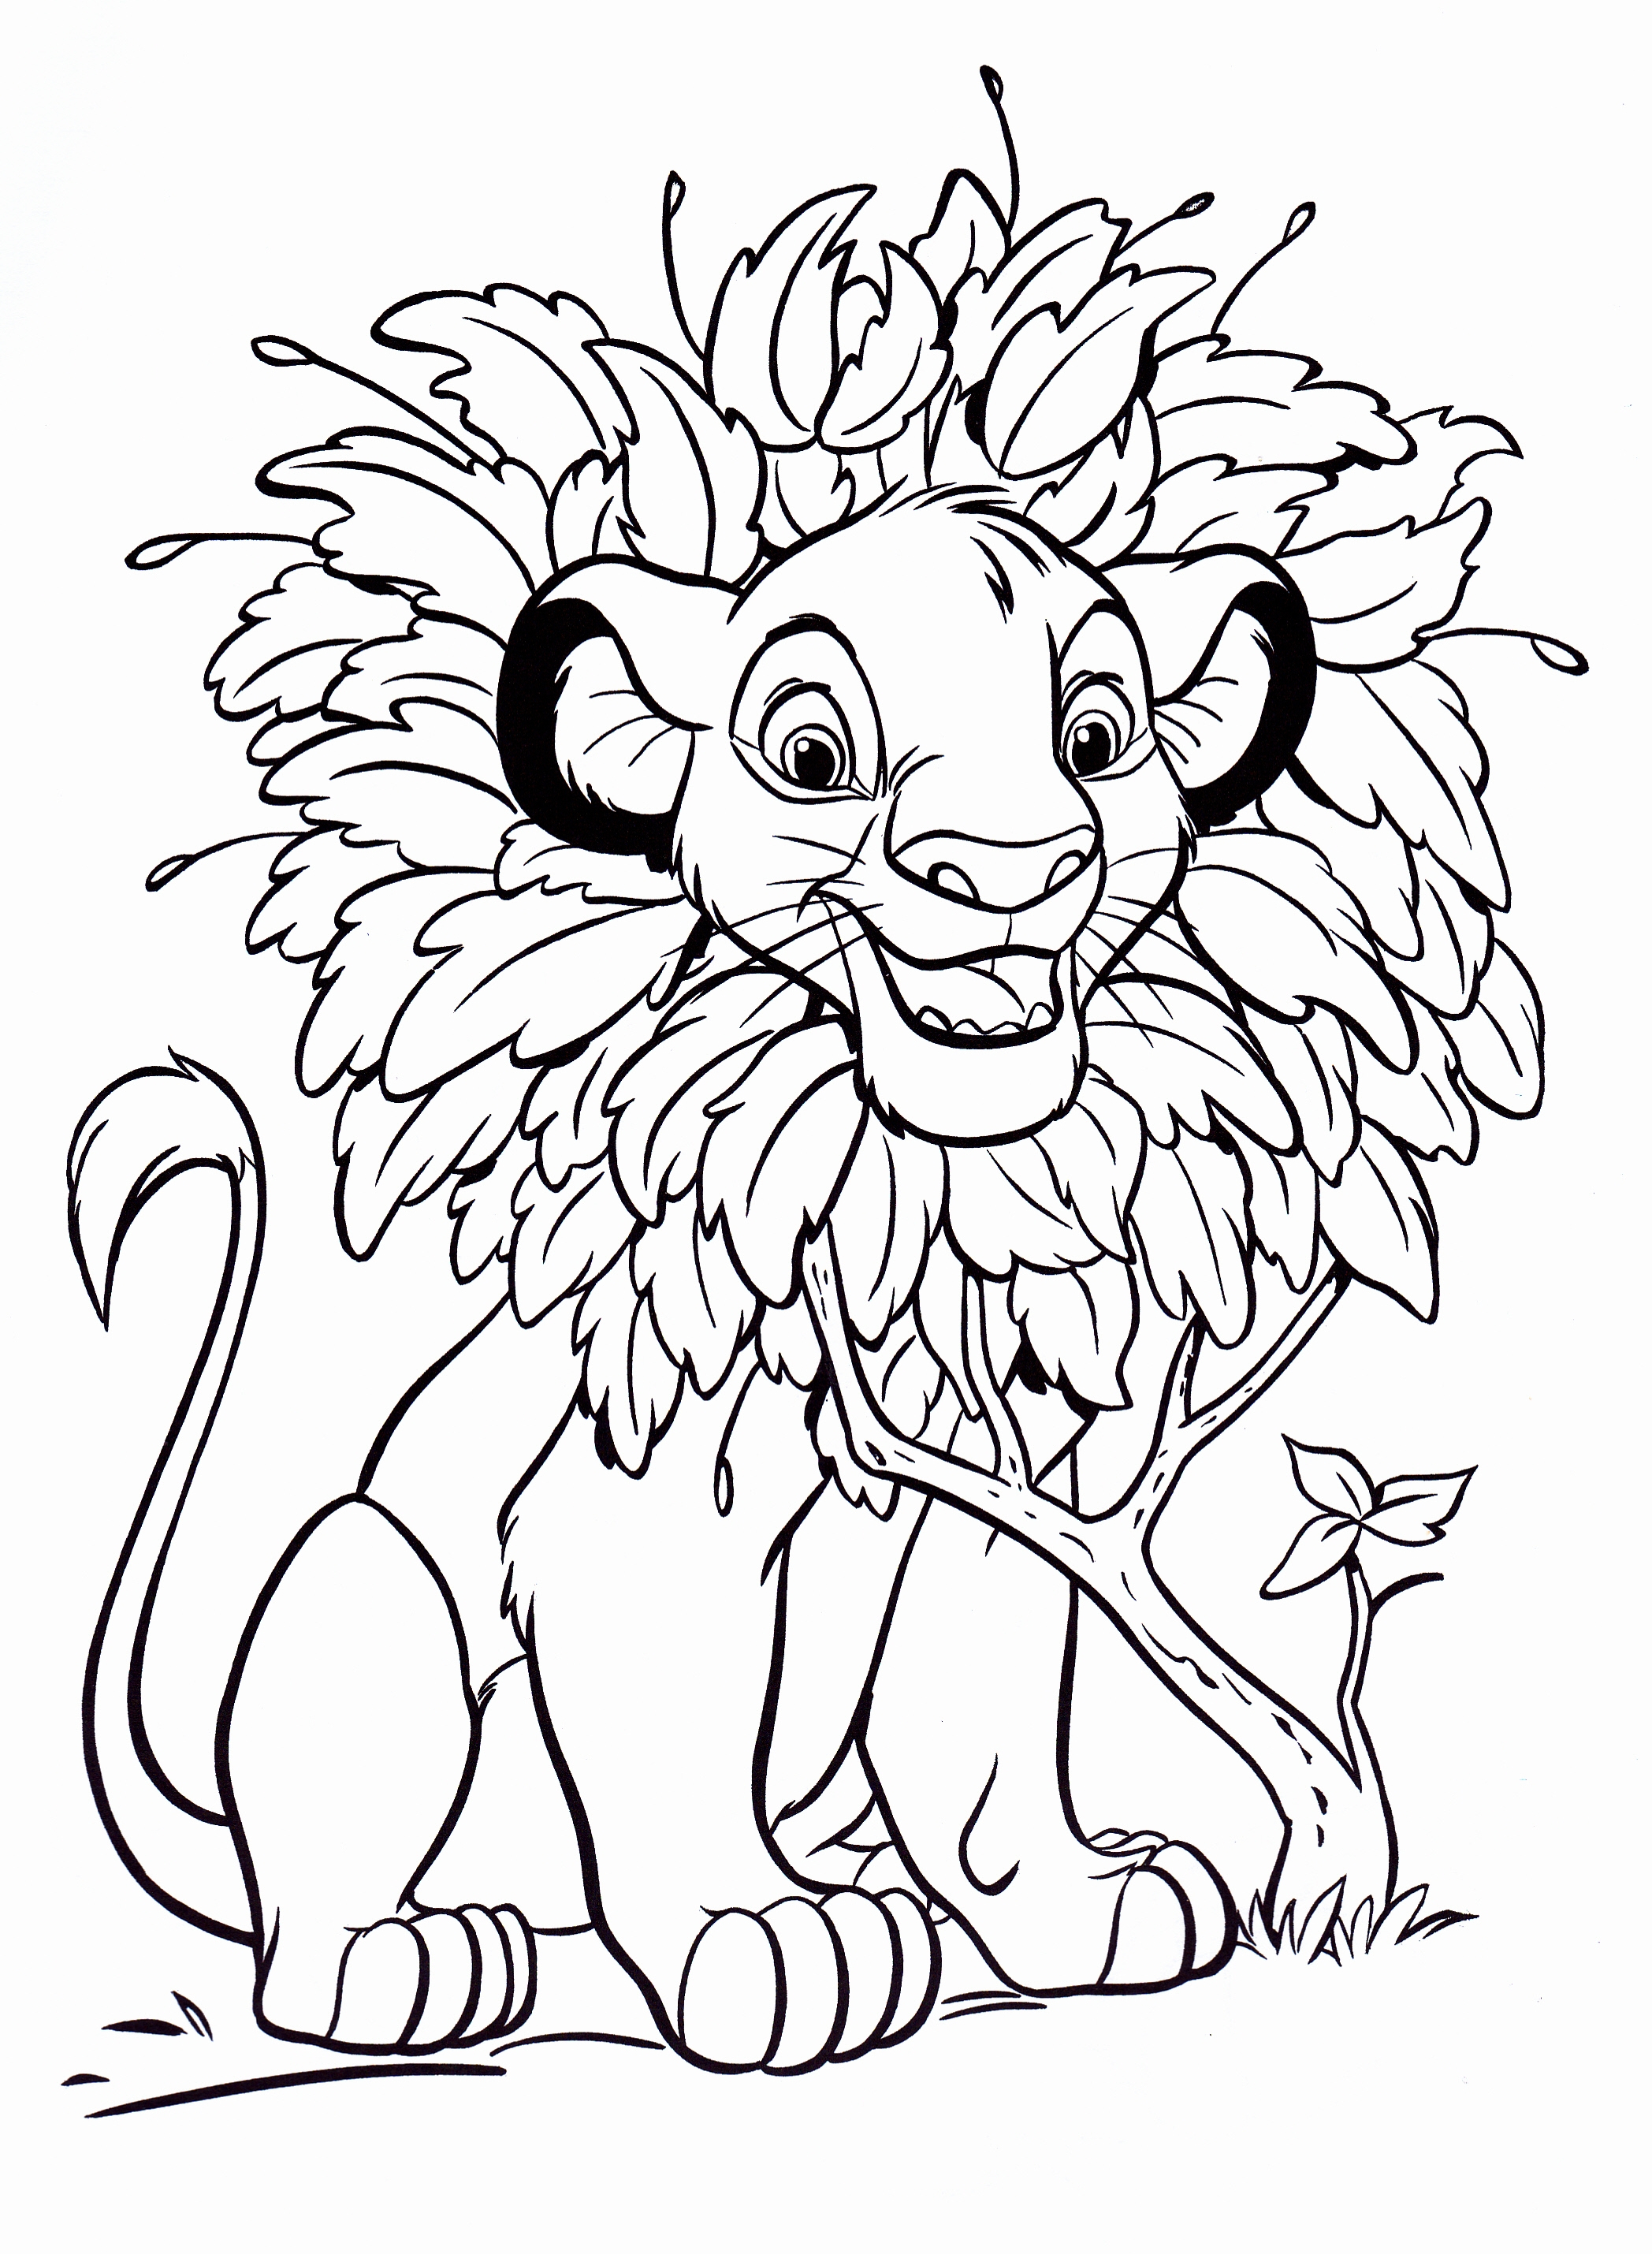 Coloring Pages Disney - Saglik - Free Printable Coloring Pages Of Disney Characters